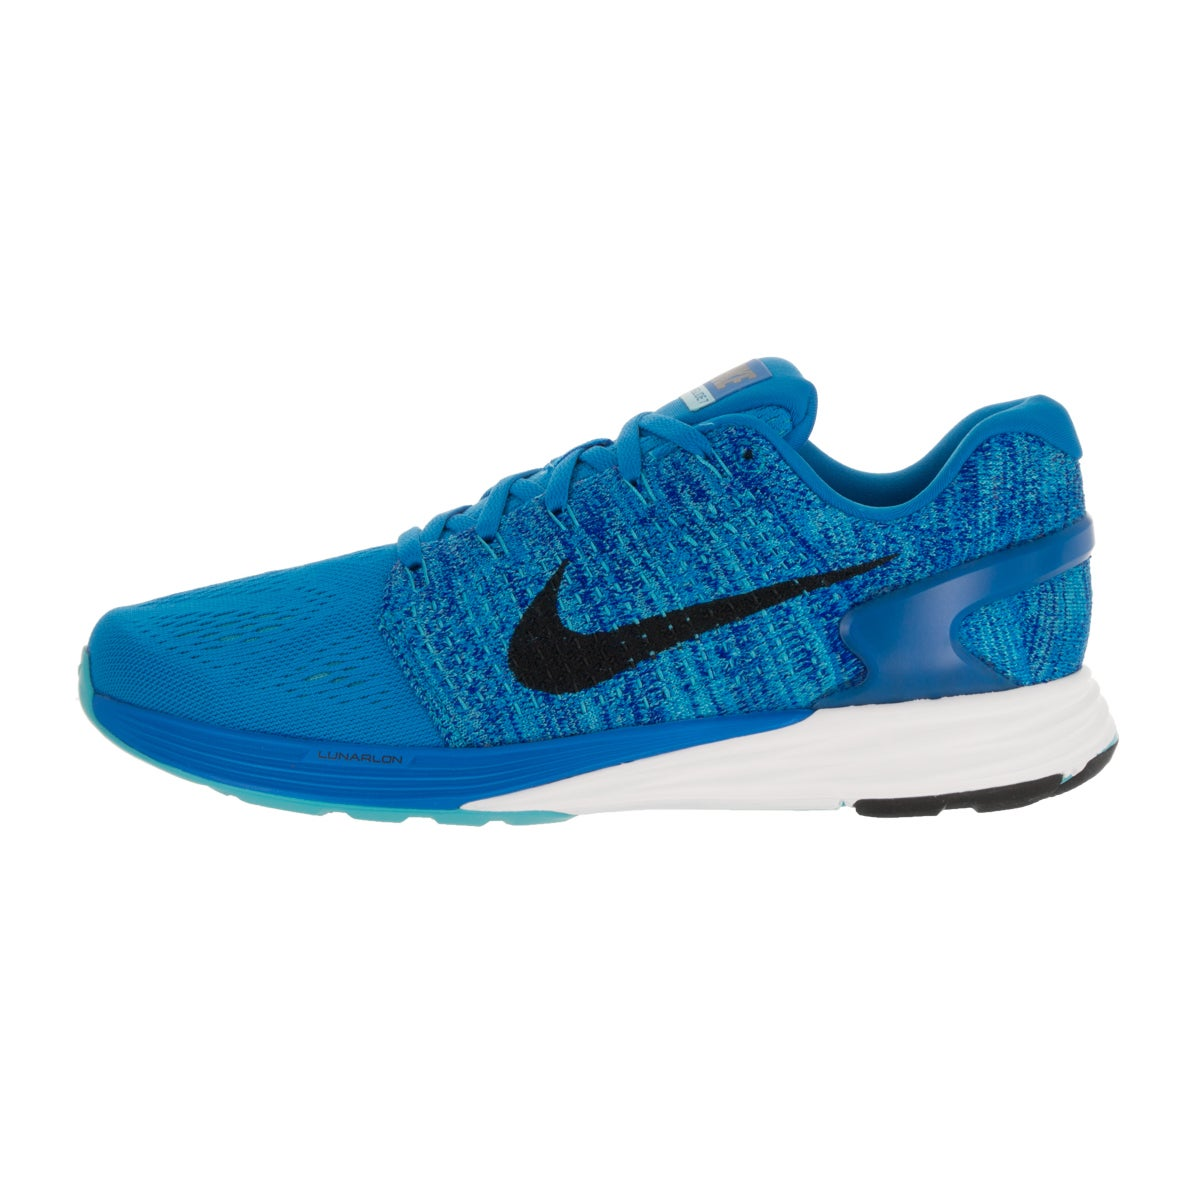 fdf53fa863ddb Shop Nike Men s Lunarglide 7 Photo Blue Black Gmm Bl Cncrg Running Shoe  (Size 10) - Free Shipping Today - Overstock - 13394950